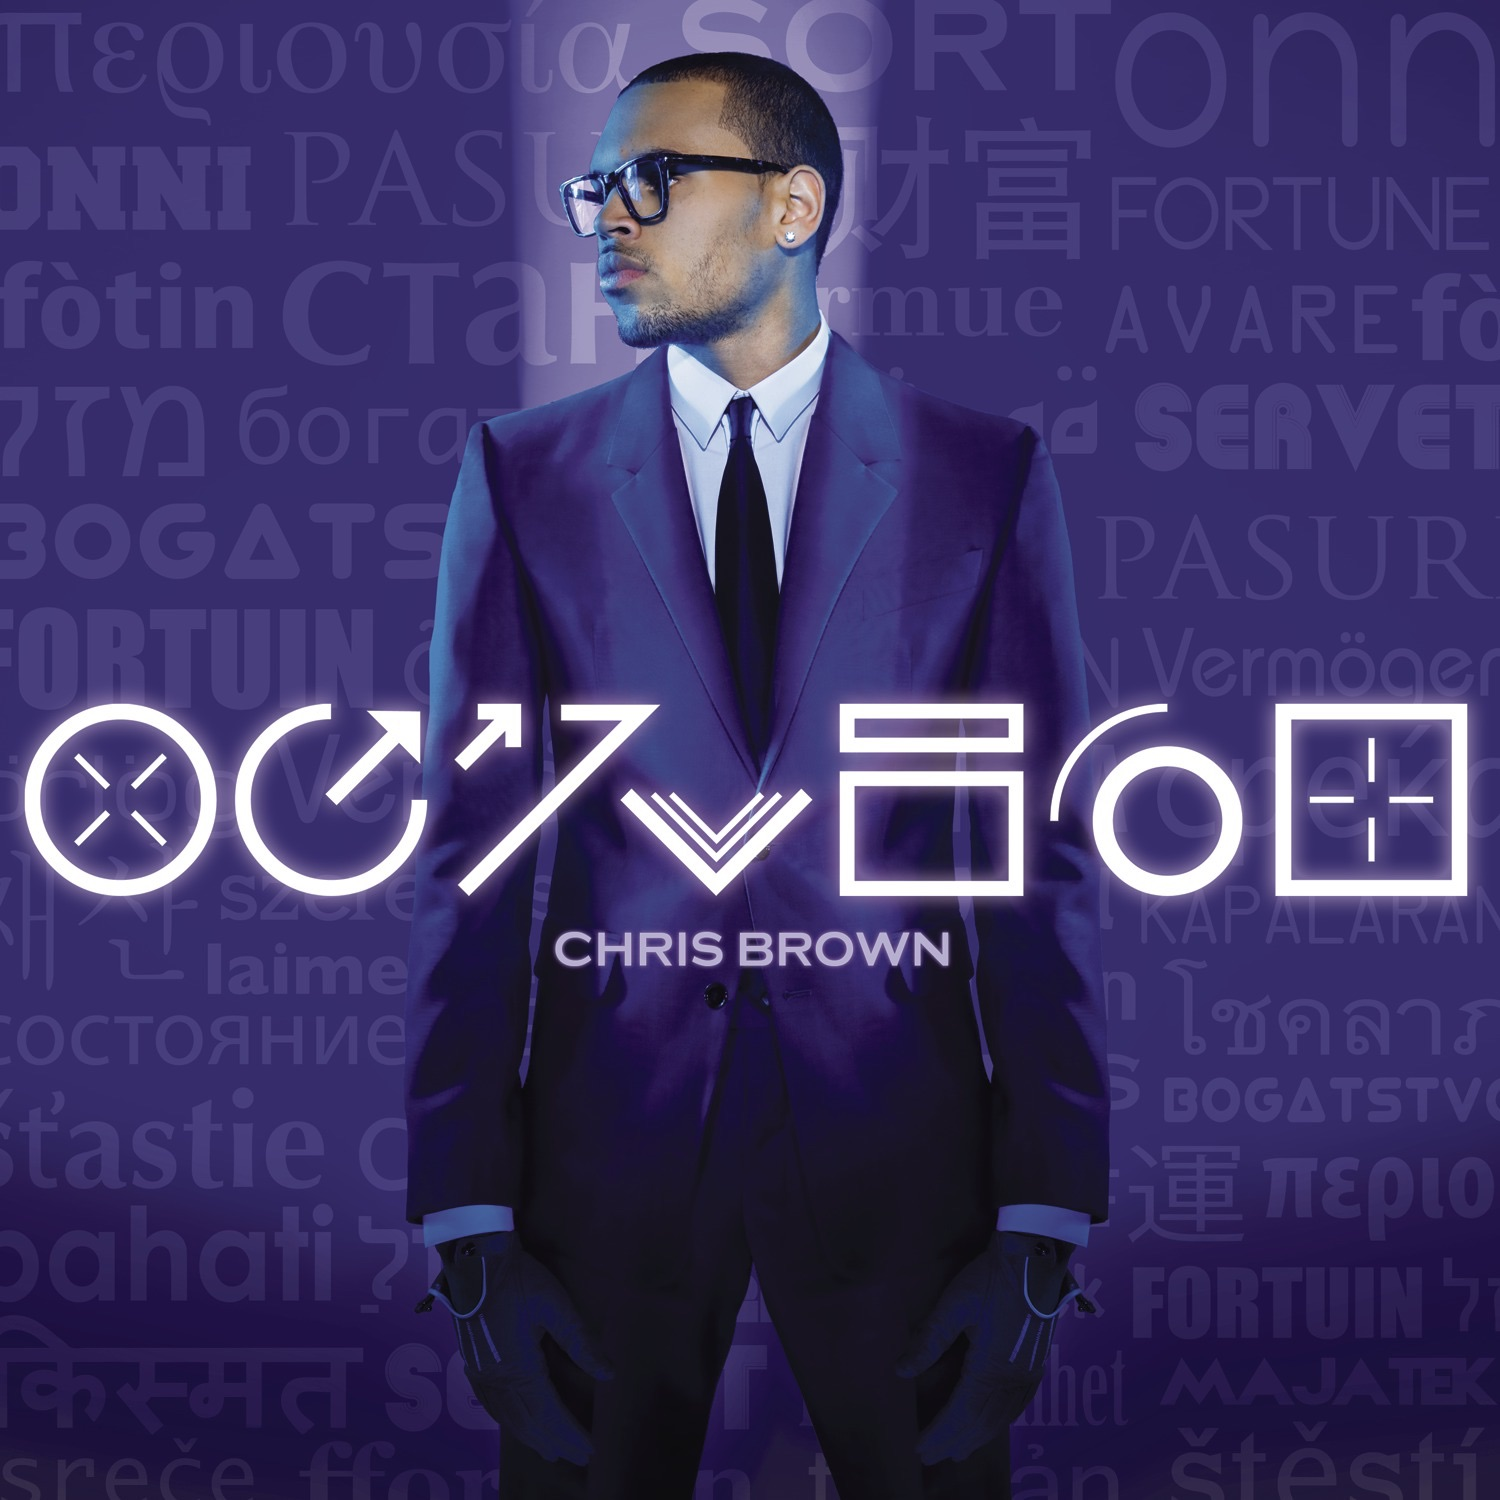 Fortune (Deluxe Version) by Chris Brown on iTunes